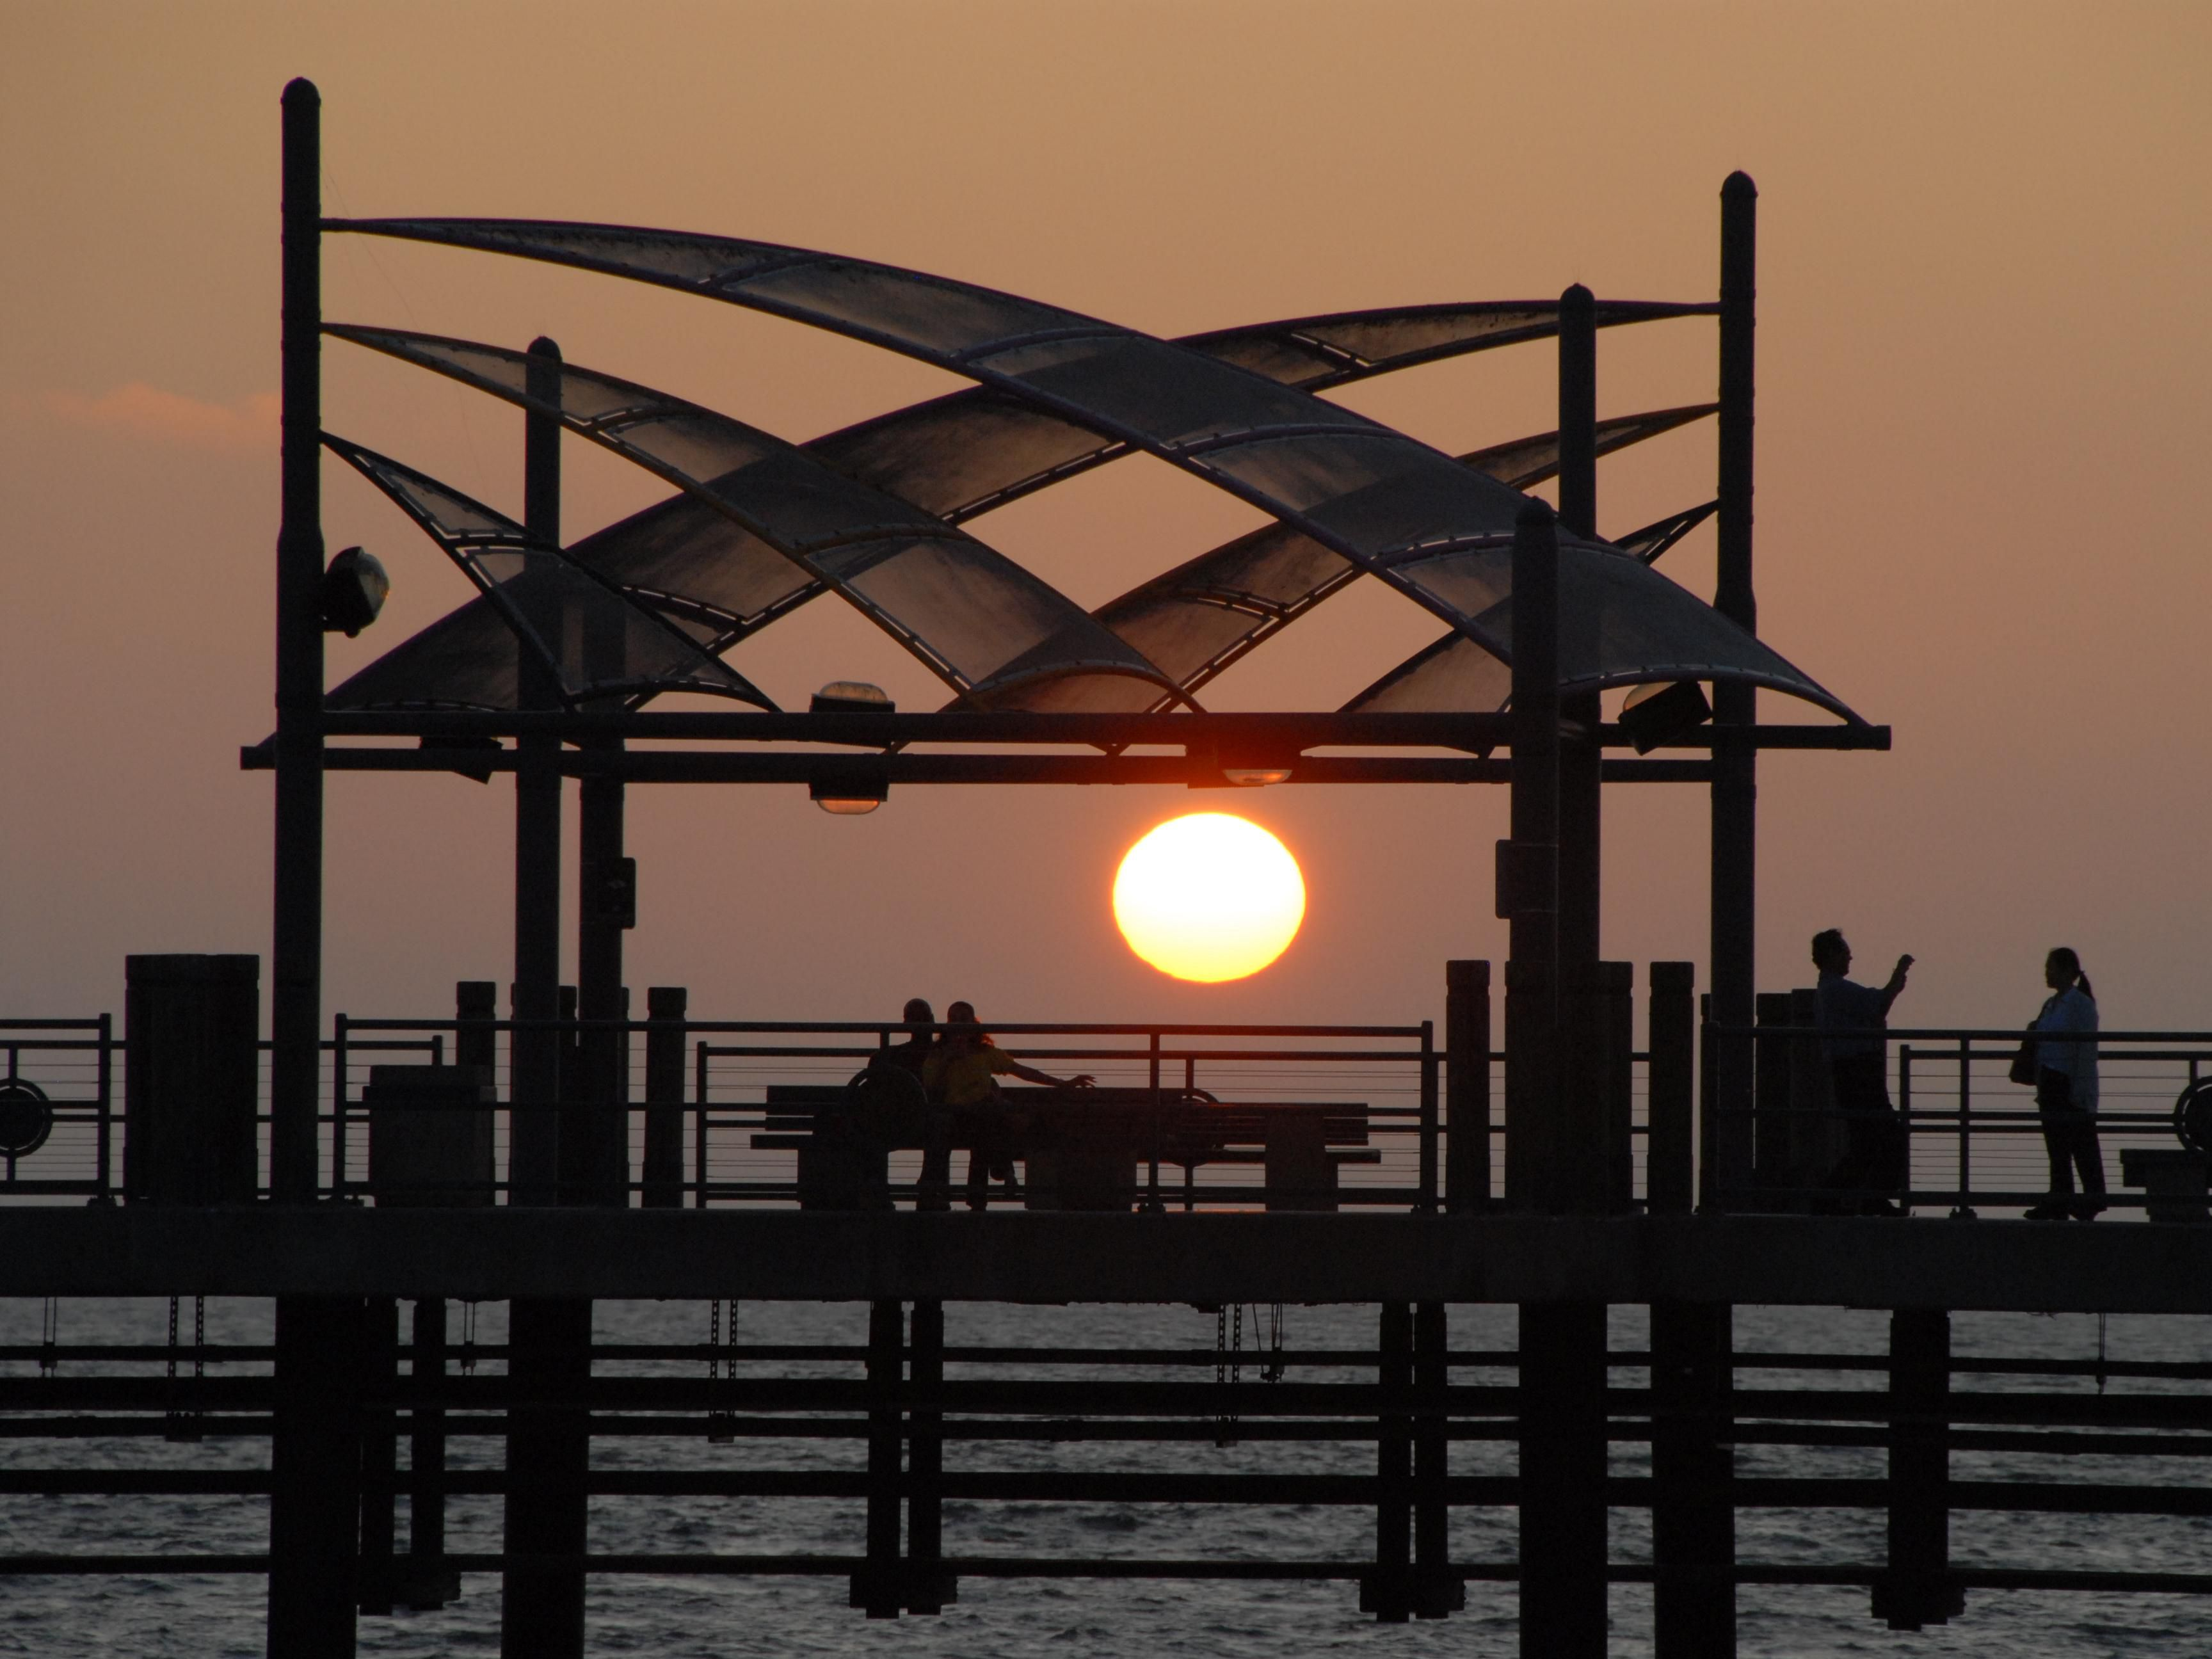 Redondo Beach Pier at Sunset